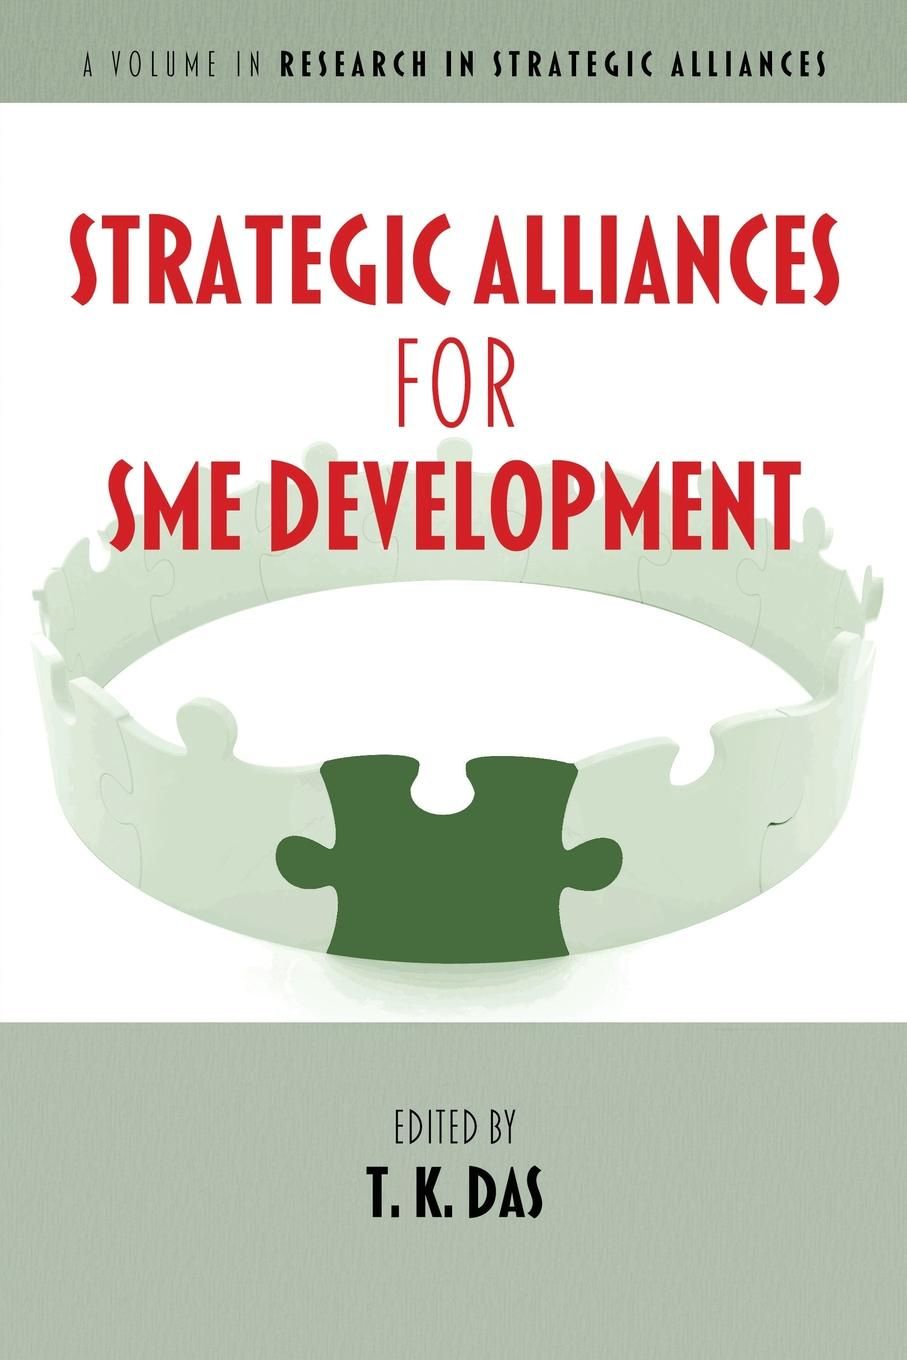 Strategic Alliances for SME Development malcolm kemp extreme events robust portfolio construction in the presence of fat tails isbn 9780470976791